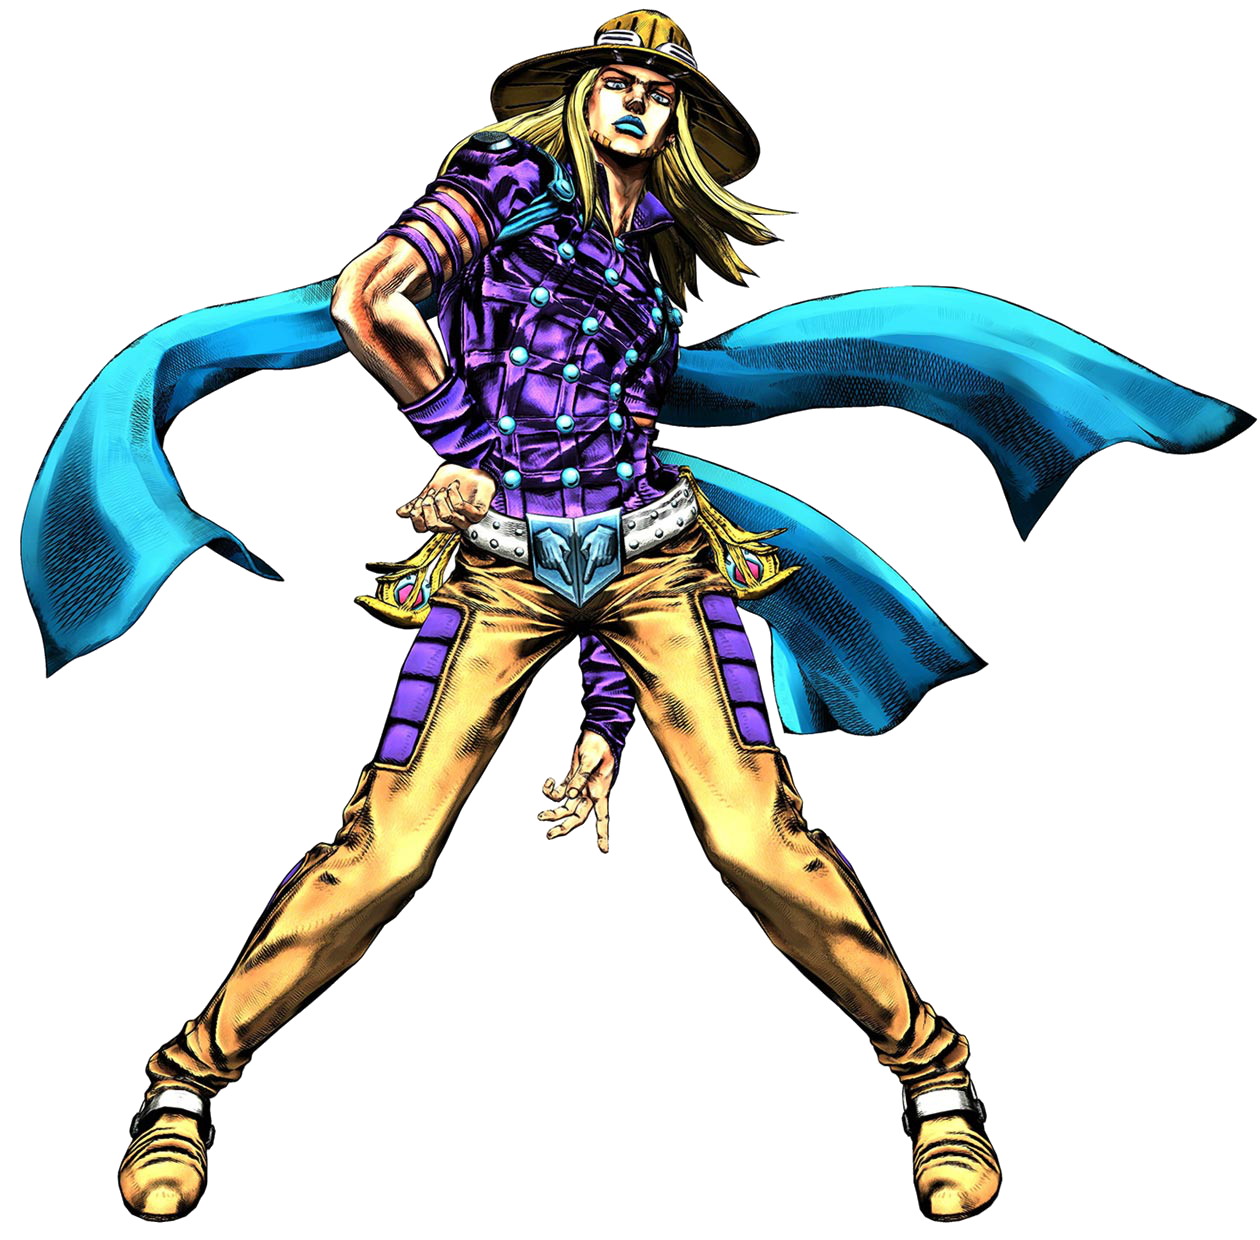 https://vignette.wikia.nocookie.net/characterprofile/images/6/61/Gyro.png/revision/latest?cb=20160614185815